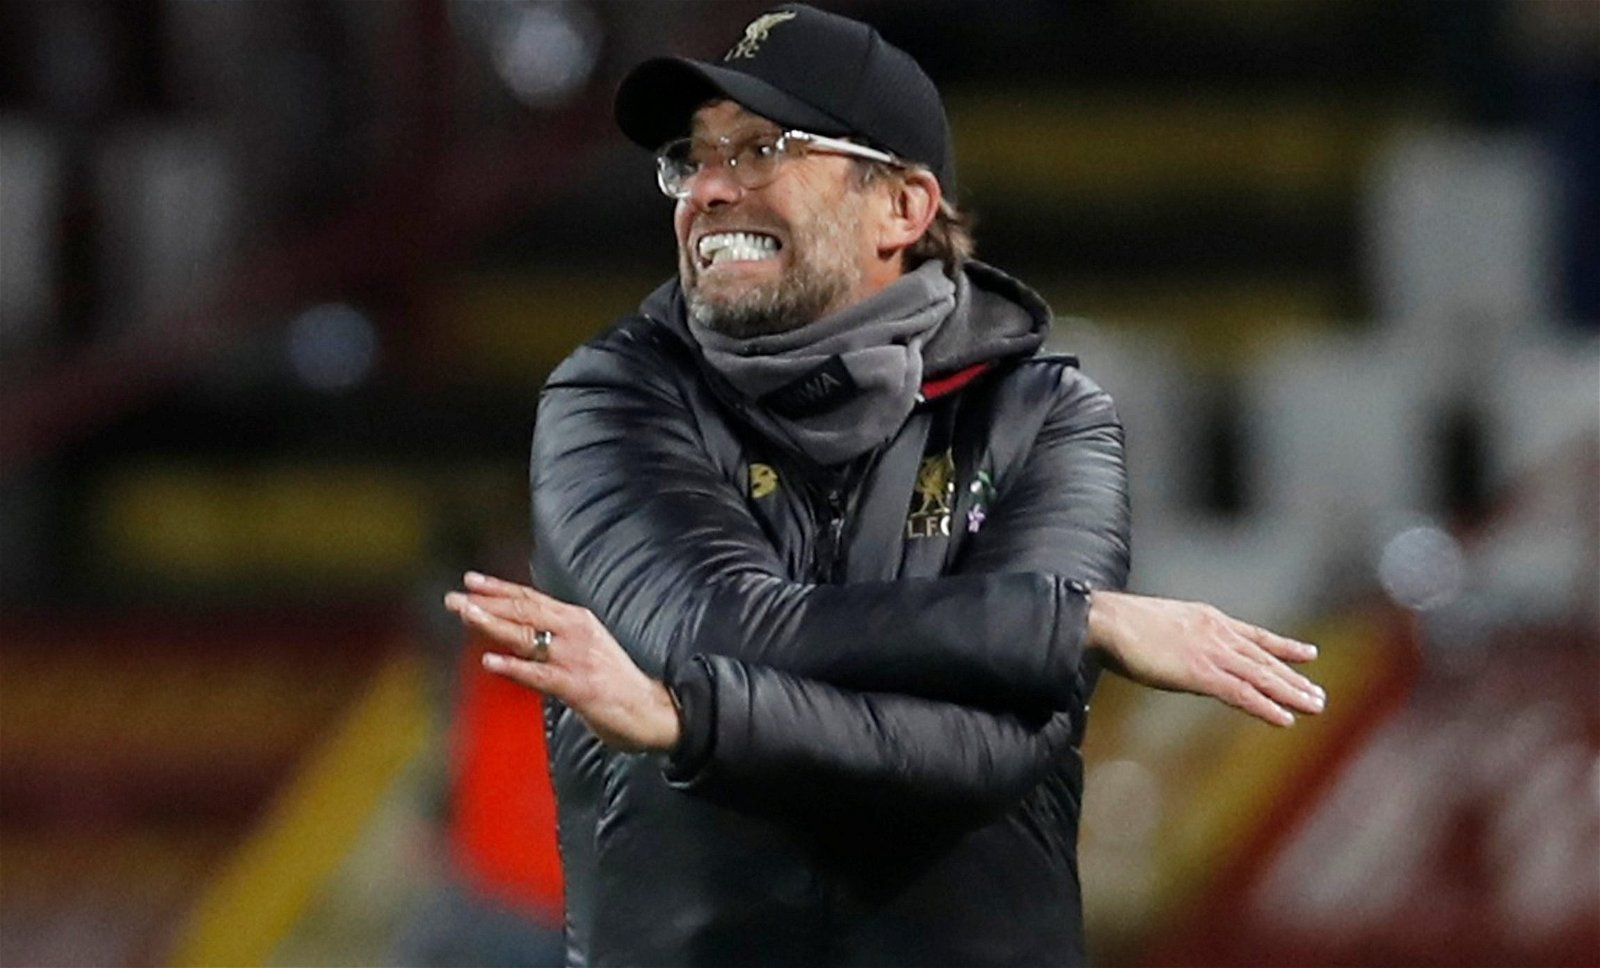 Jurgen Klopp gestures wildly during Red Star Belgrade v Liverpool e1541590468207 - 12 goals, 4 assists: Talented academy product the perfect addition to Klopp's squad for 2019/20